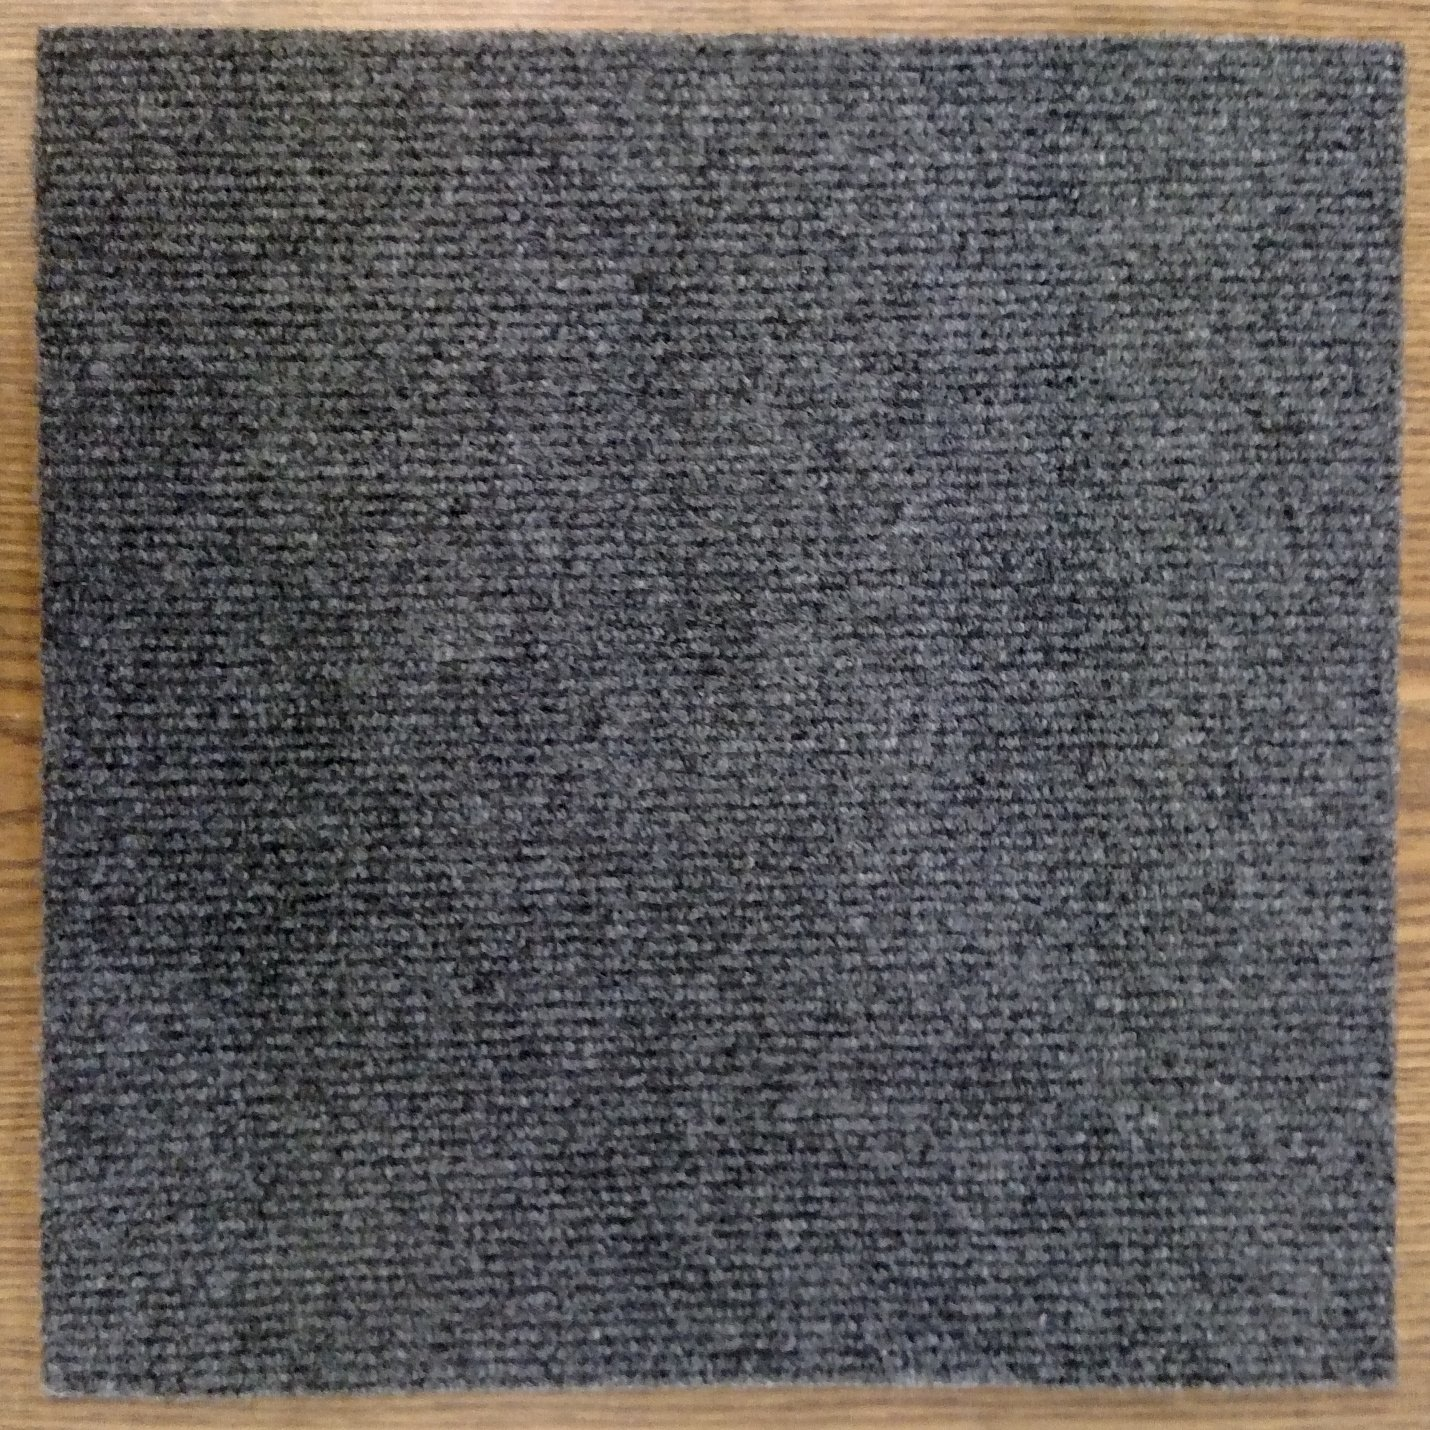 Carpet Tiles Self Stick 12 (72 Sq. Ft.) Charcoal Gray Homeworx CT72CG